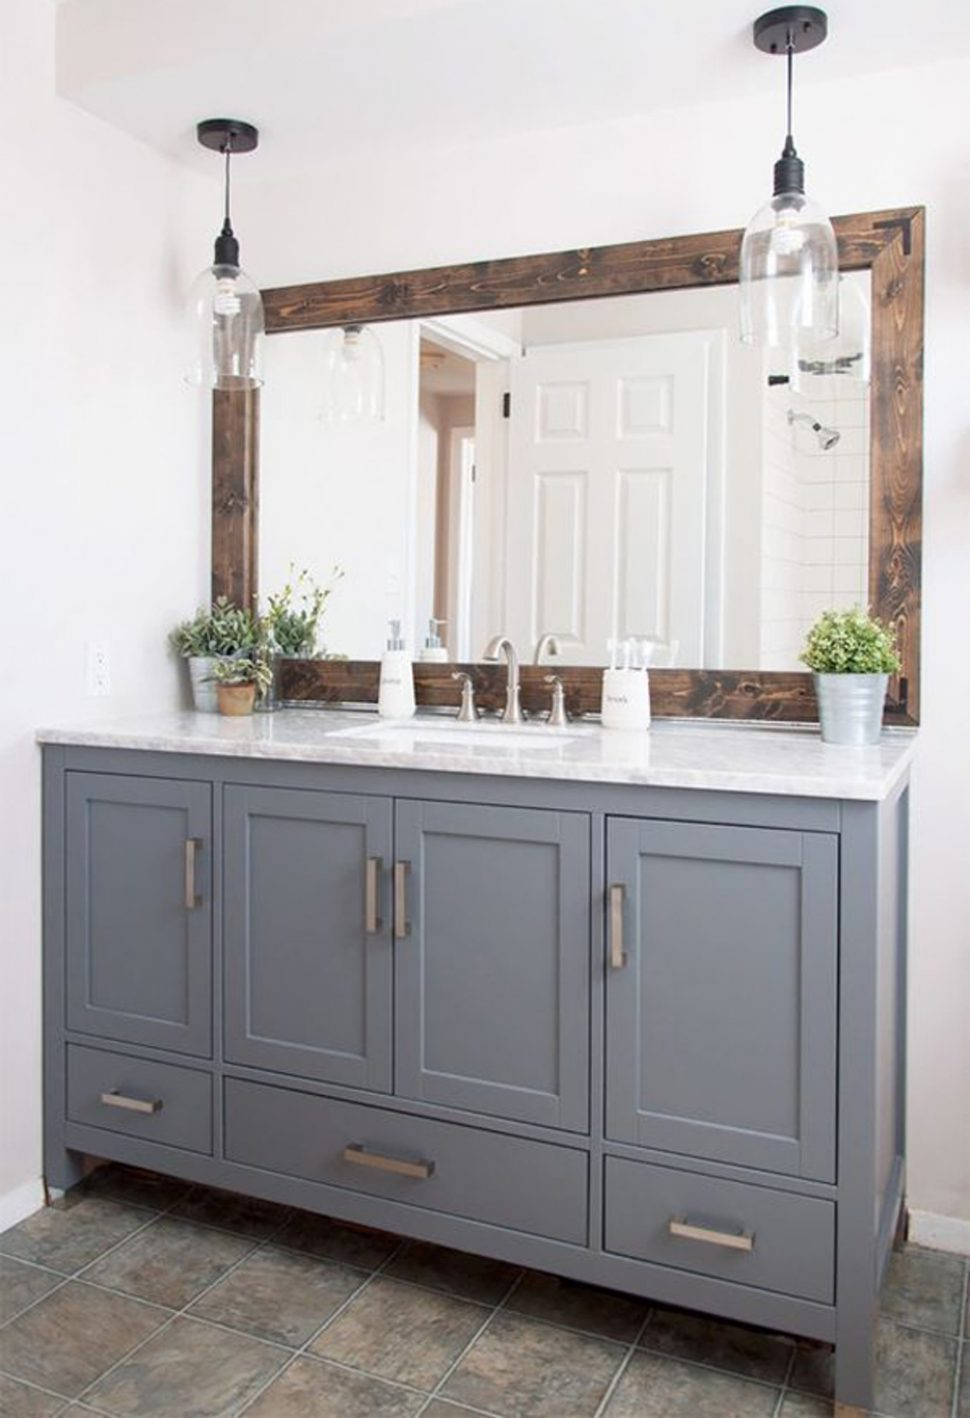 Elite Bathroom : Bathroom Rustic Mirror Frames Diy Gorgeous Faucets Moen throughout Walmart Bathroom Vanities